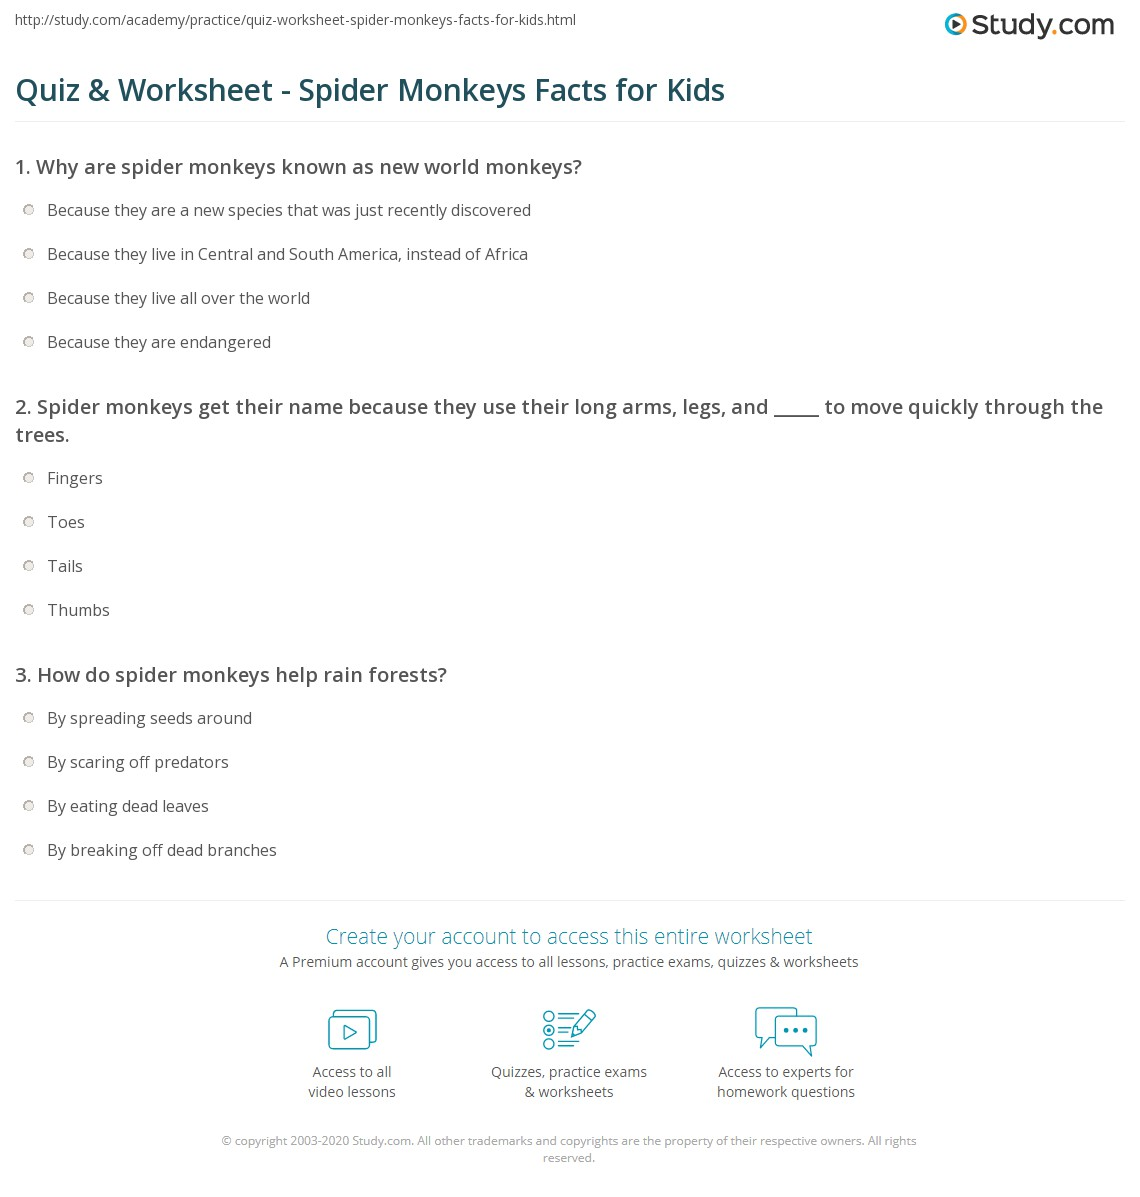 Quiz & Worksheet - Spider Monkeys Facts for Kids | Study.com